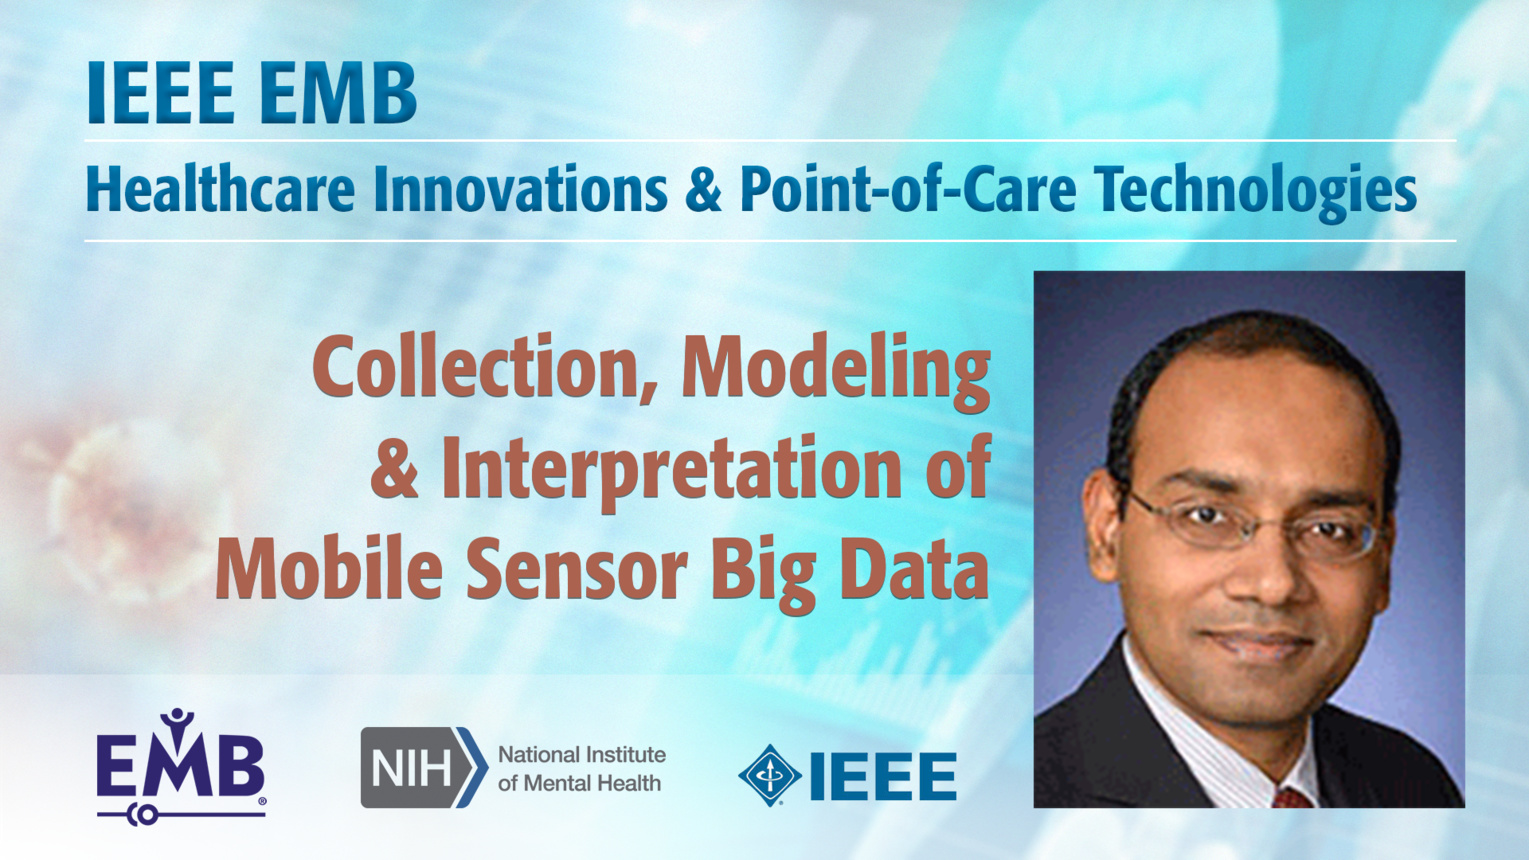 Collection, Modeling & Interpretation of Mobile Sensor Big Data - Santosh Kumar - IEEE EMBS at NIH, 2019